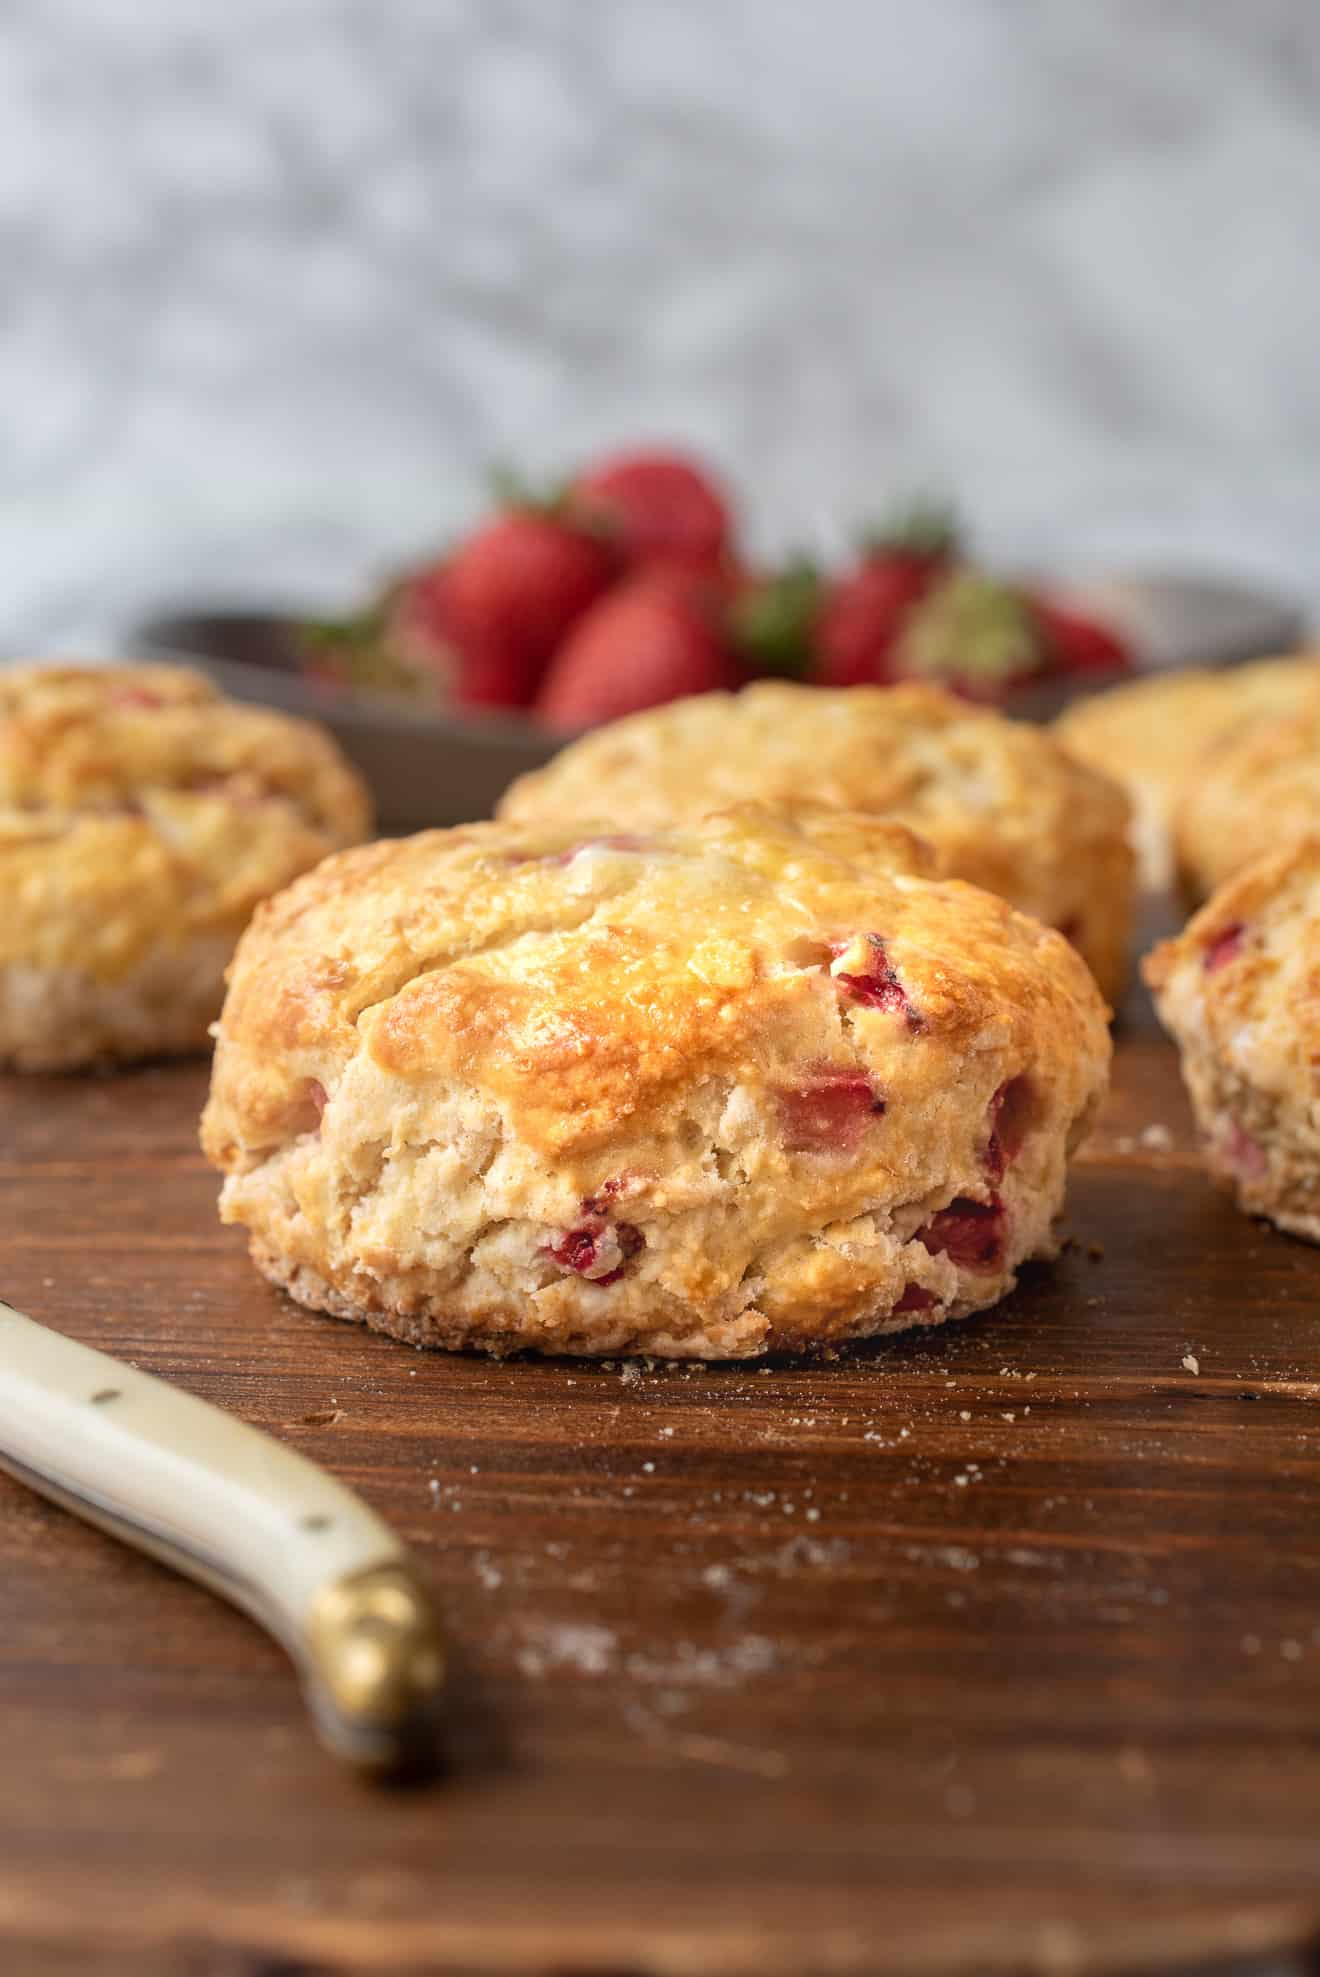 A side view of strawberry scones showing the chunks of fresh strawberries